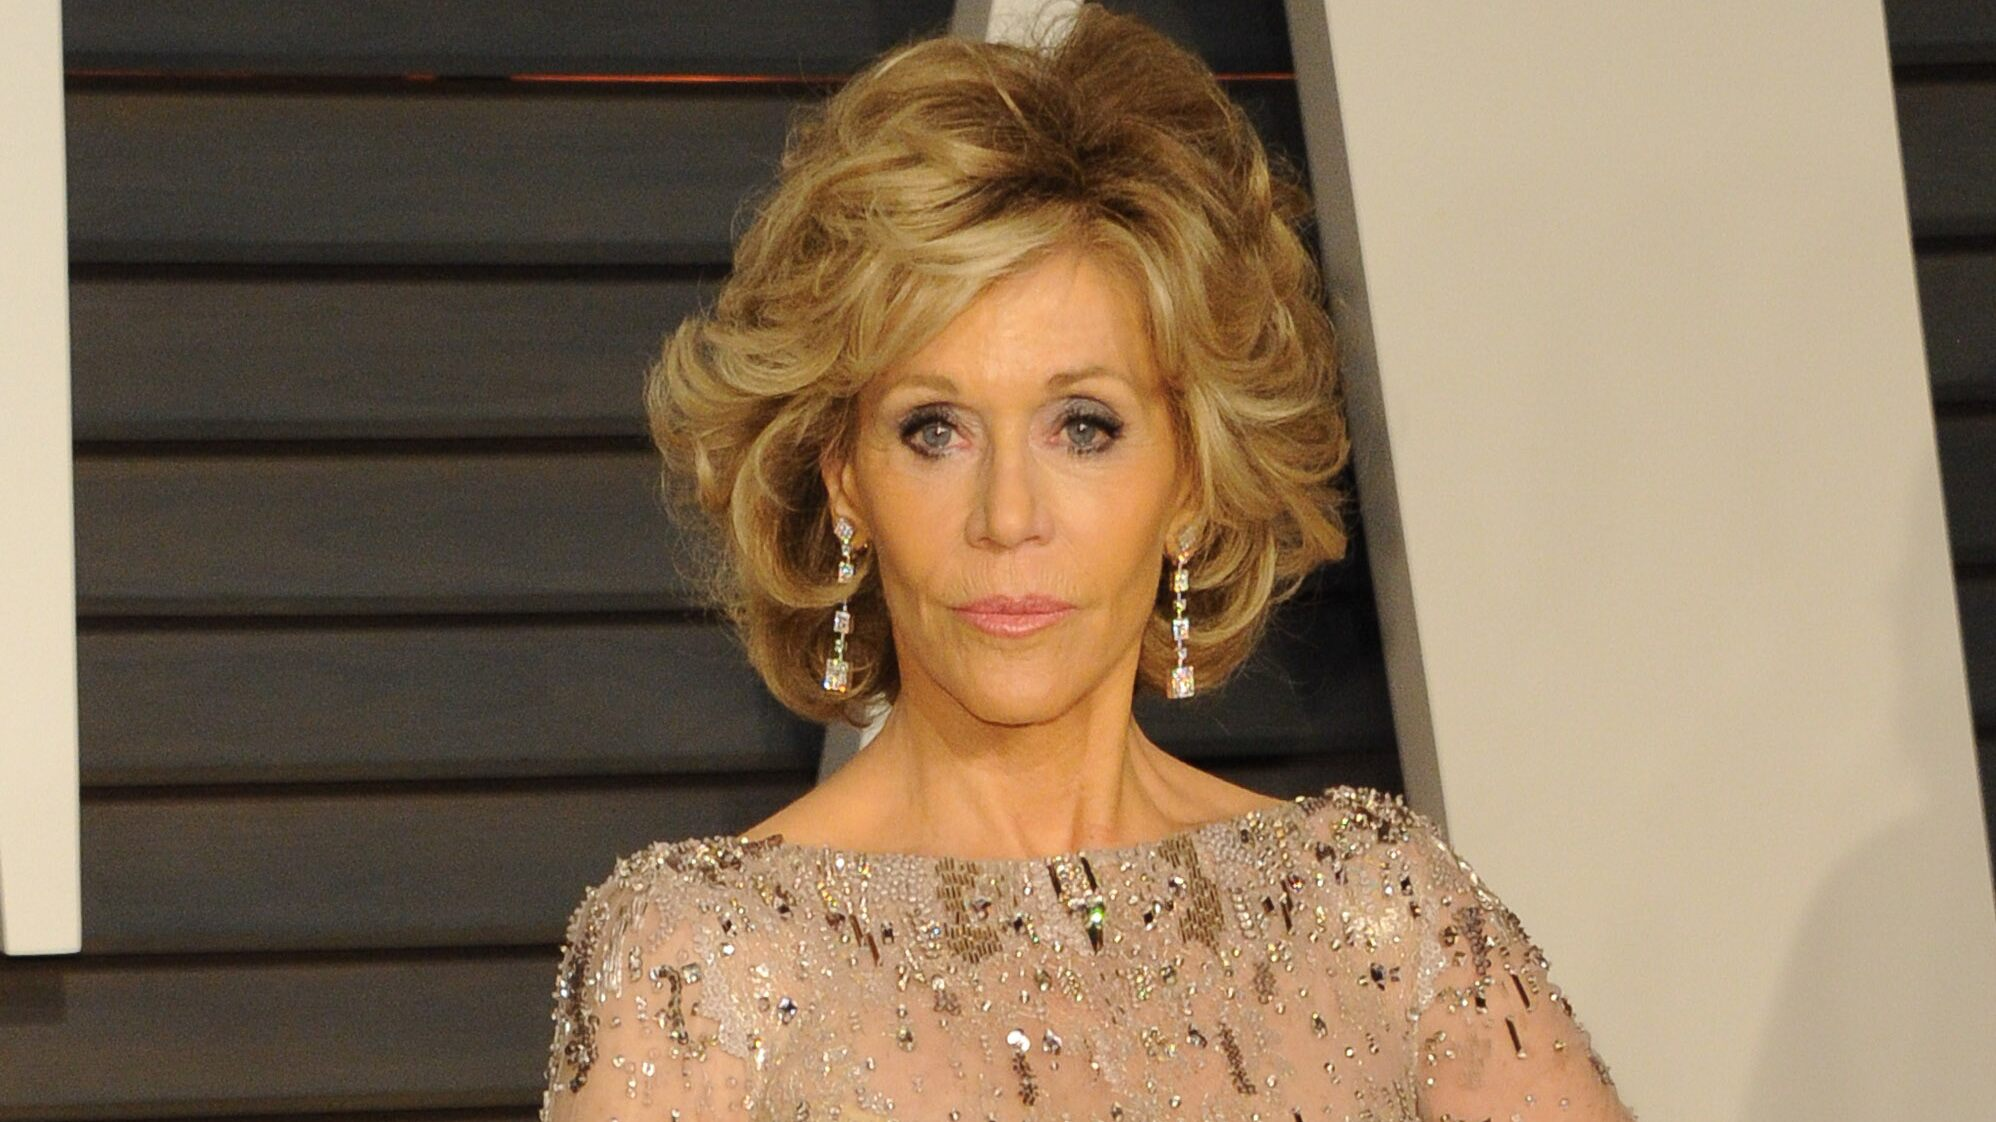 RPG told Jane Fonda that 'should be as hard as Mitch McConnell'.